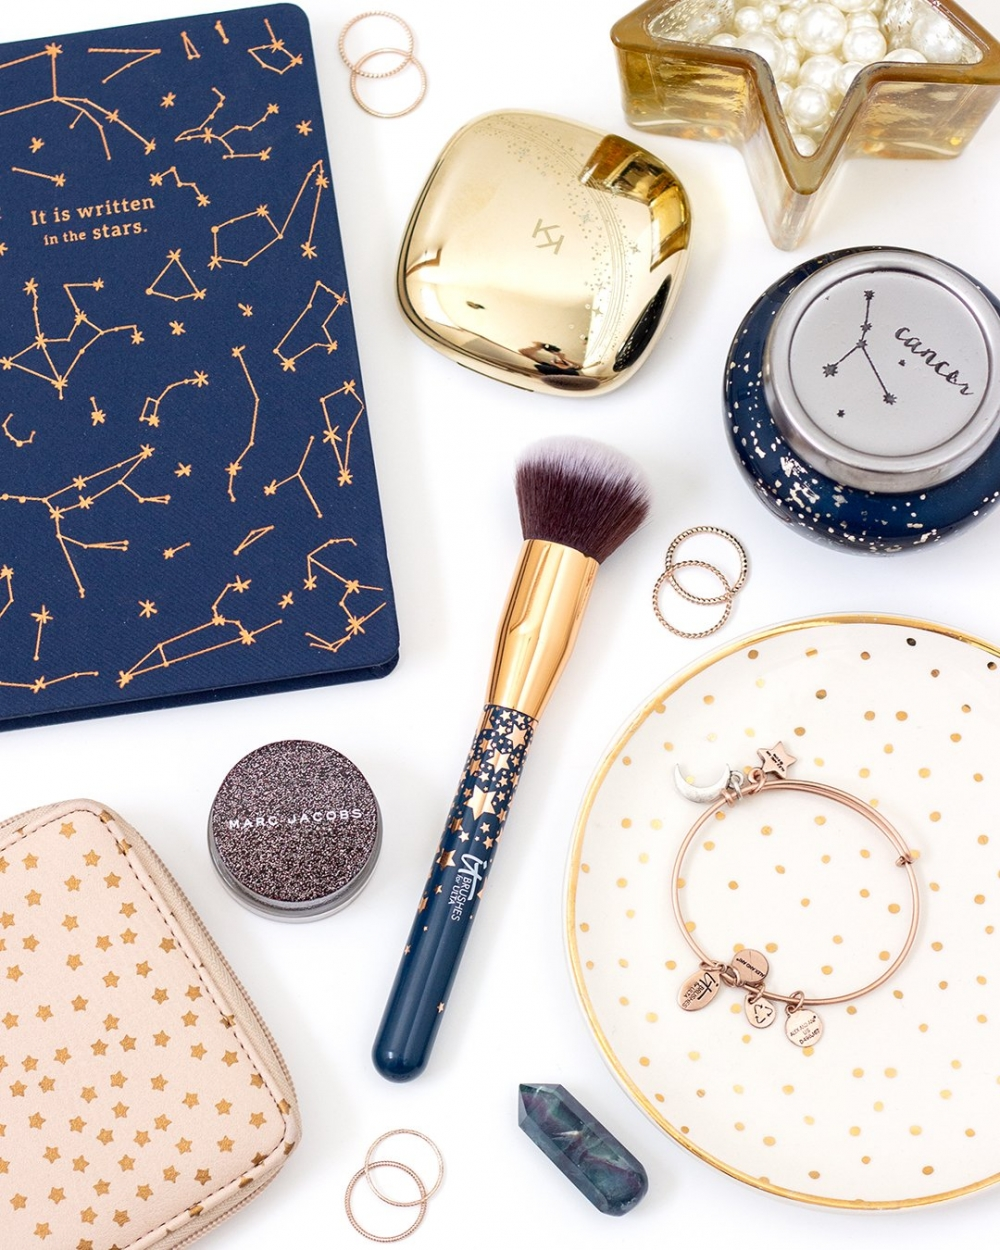 Shop the Your Celestial Wonders duo at Ulta